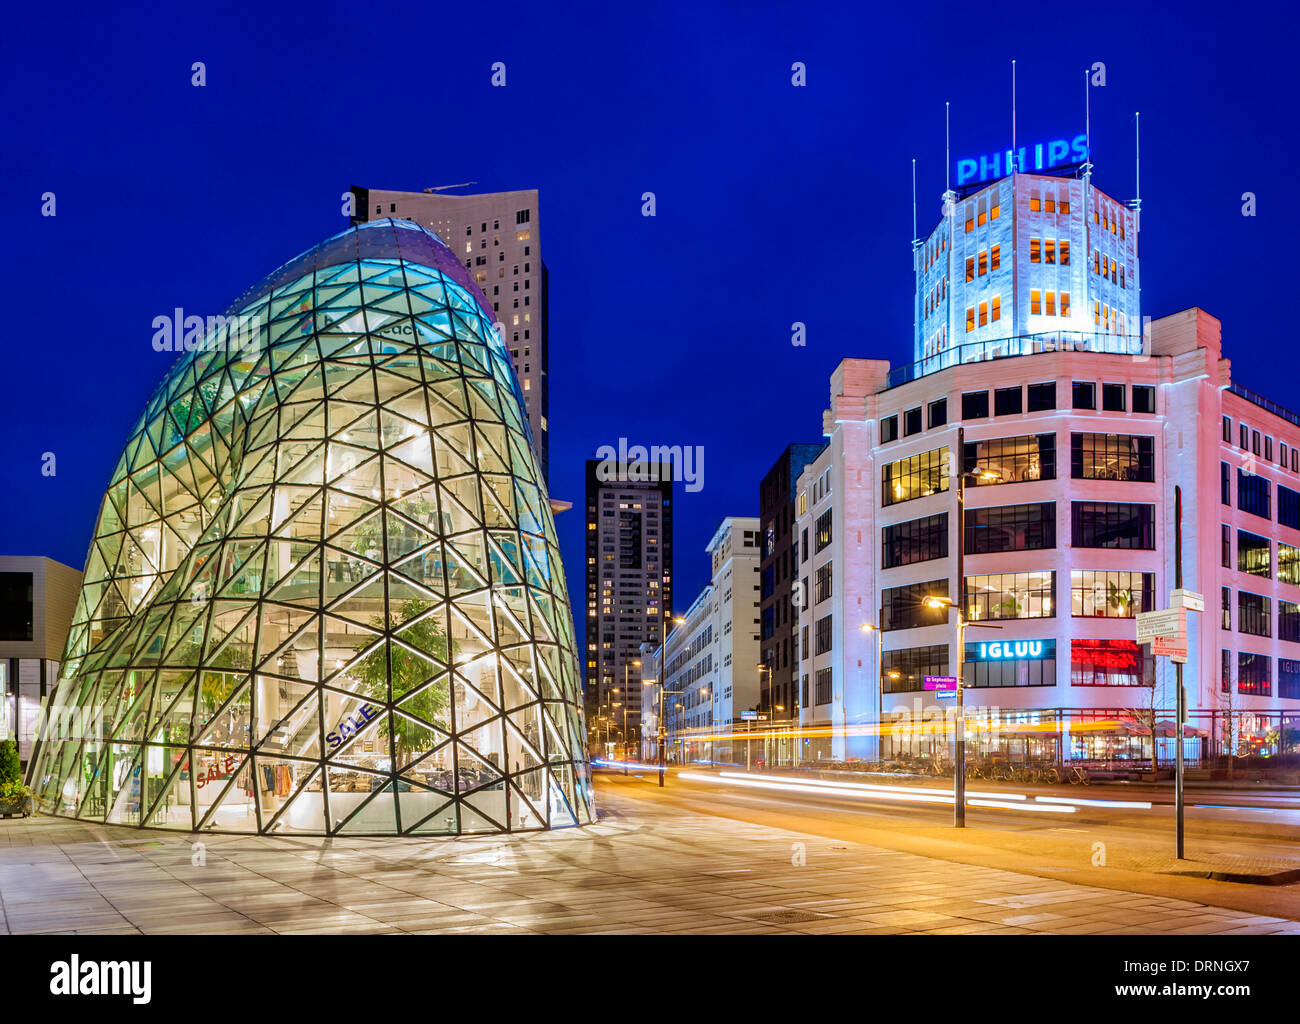 Eindhoven, Pays-Bas, Europe - Le Blob building architecture moderne dans le centre de la ville, utilisé comme l'entrée de l'admirant shopping mall Photo Stock